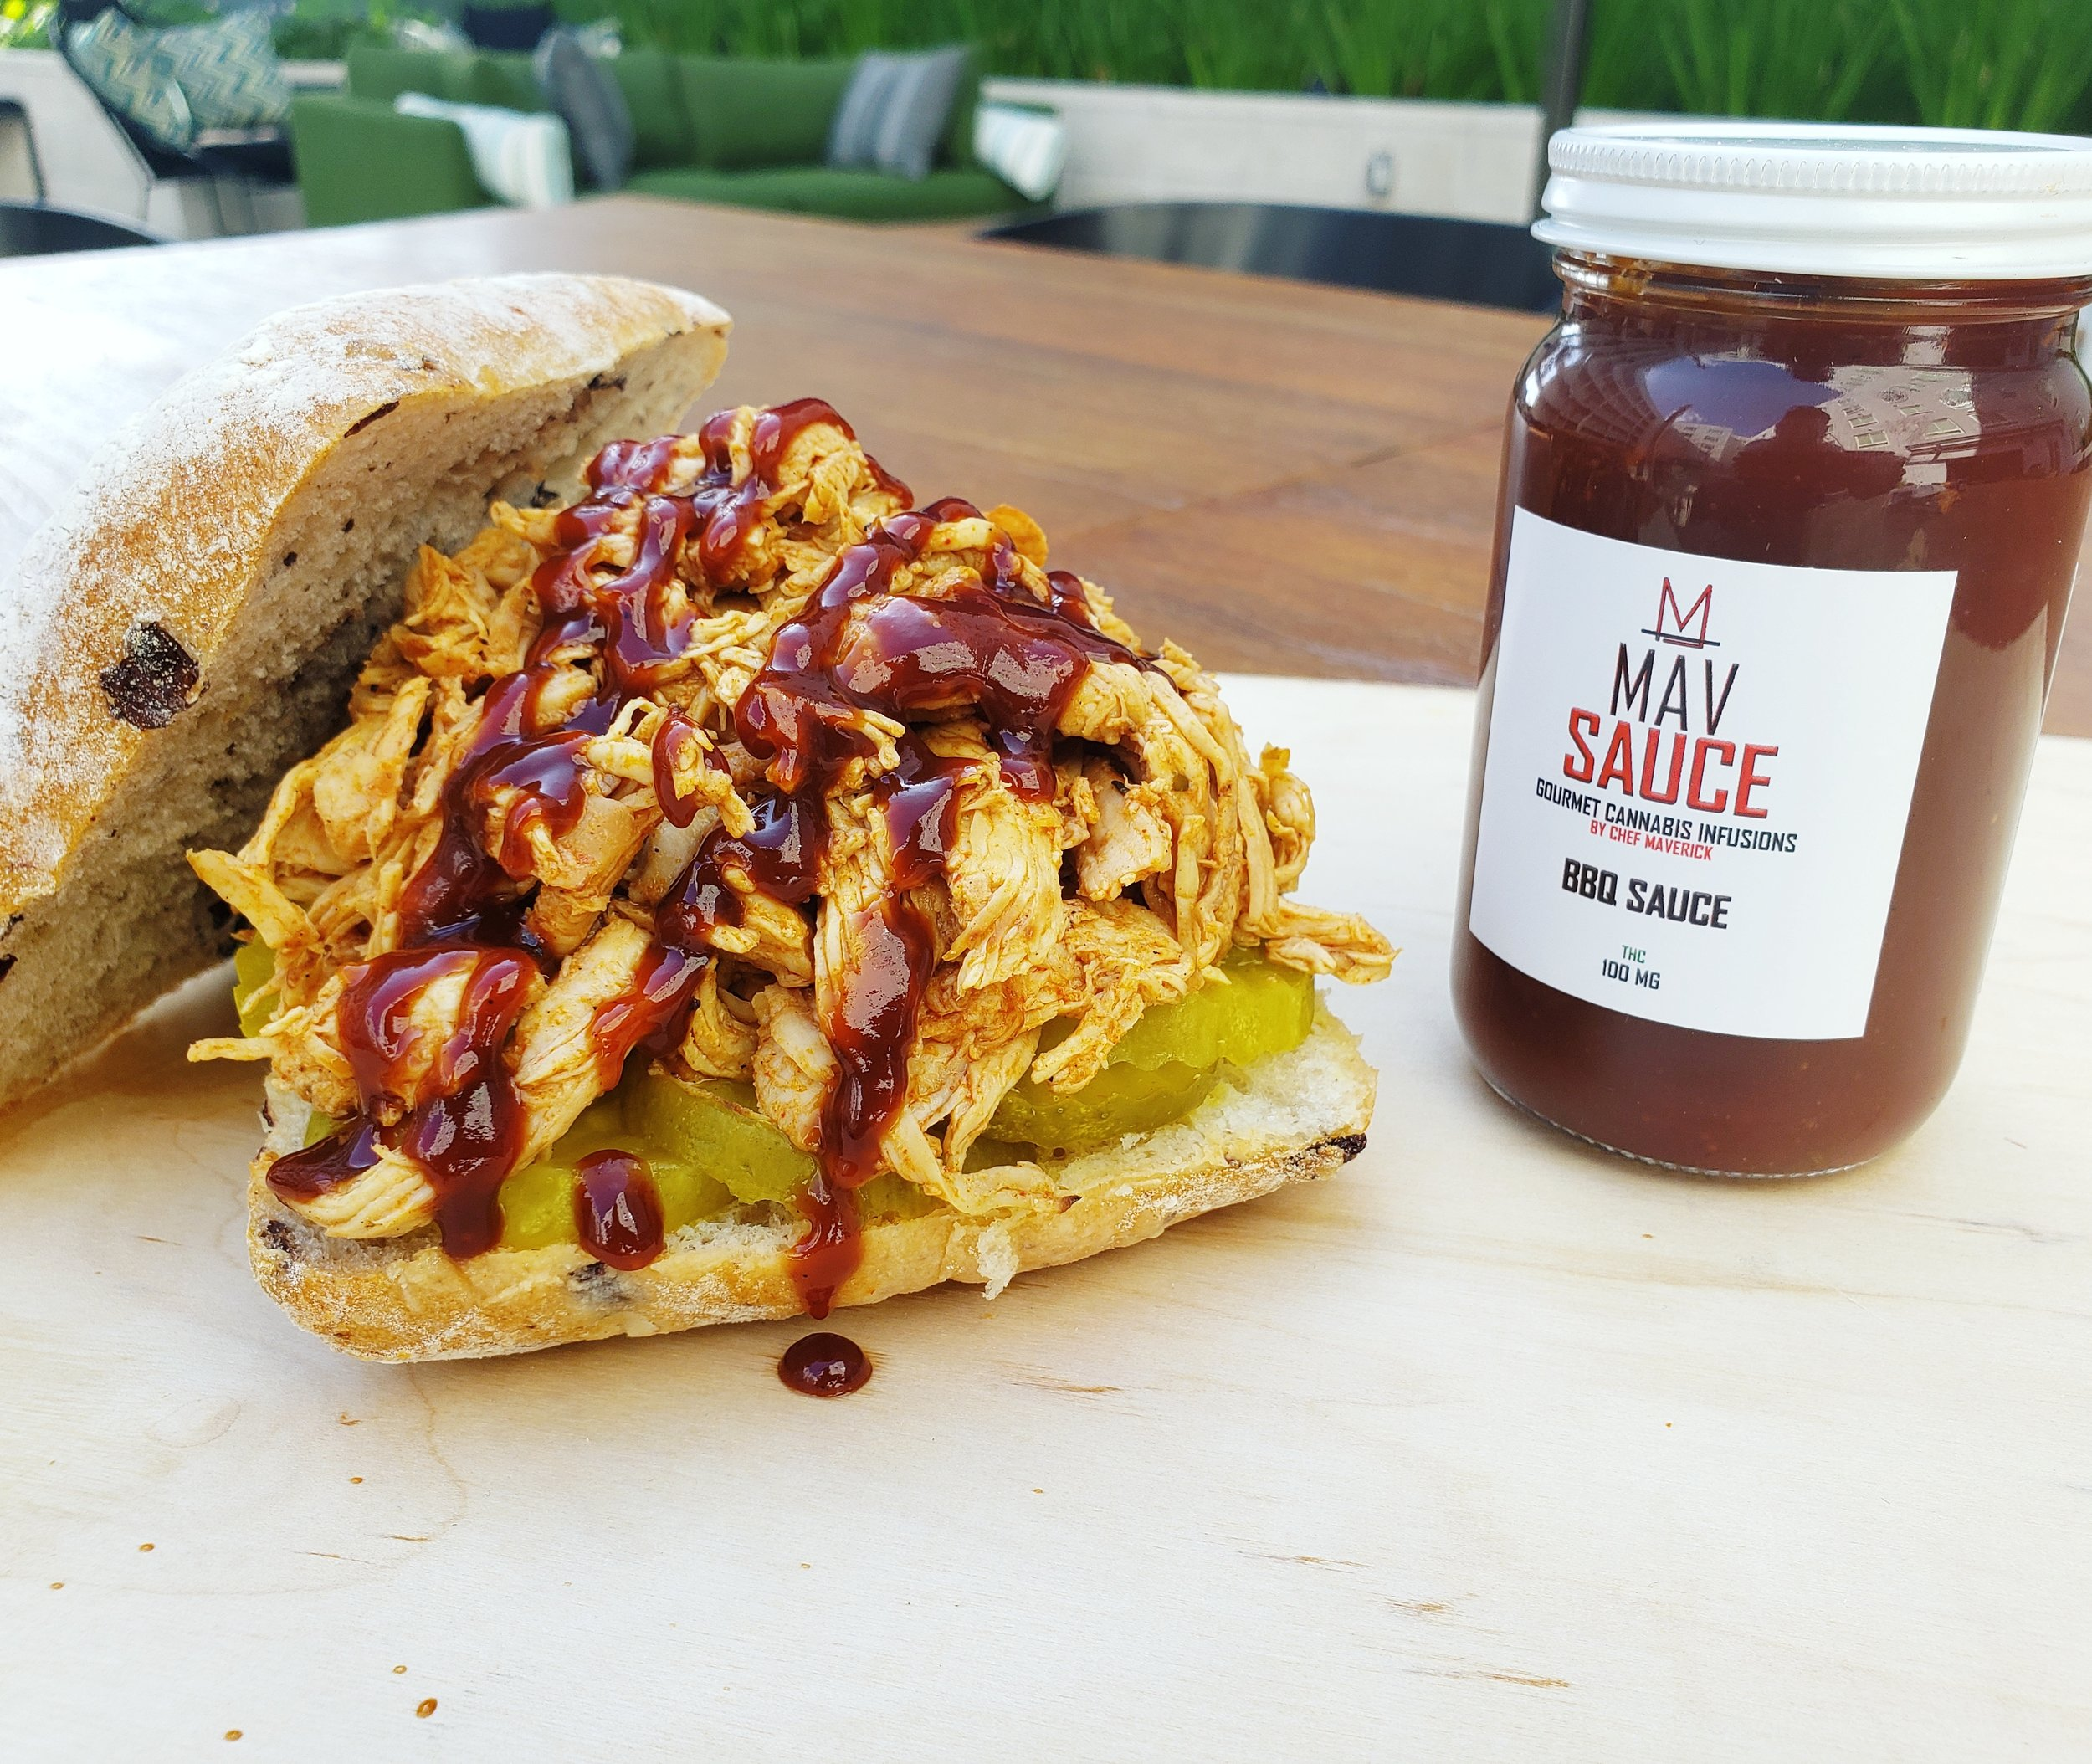 MEMPHIS SWEET & SPICY BBQ SAUCE   CHEF MAVERICK'S SPECIAL RECIPE MEMPHIS SWEET & SPICY BBQ SAUCE BRINGS THAT SWEET HEAT YOU ARE SURE TO LOVE.   AVAILABLE DOSES : 8 OZ - 100 MG   GLUTEN FREE, SOY FREE